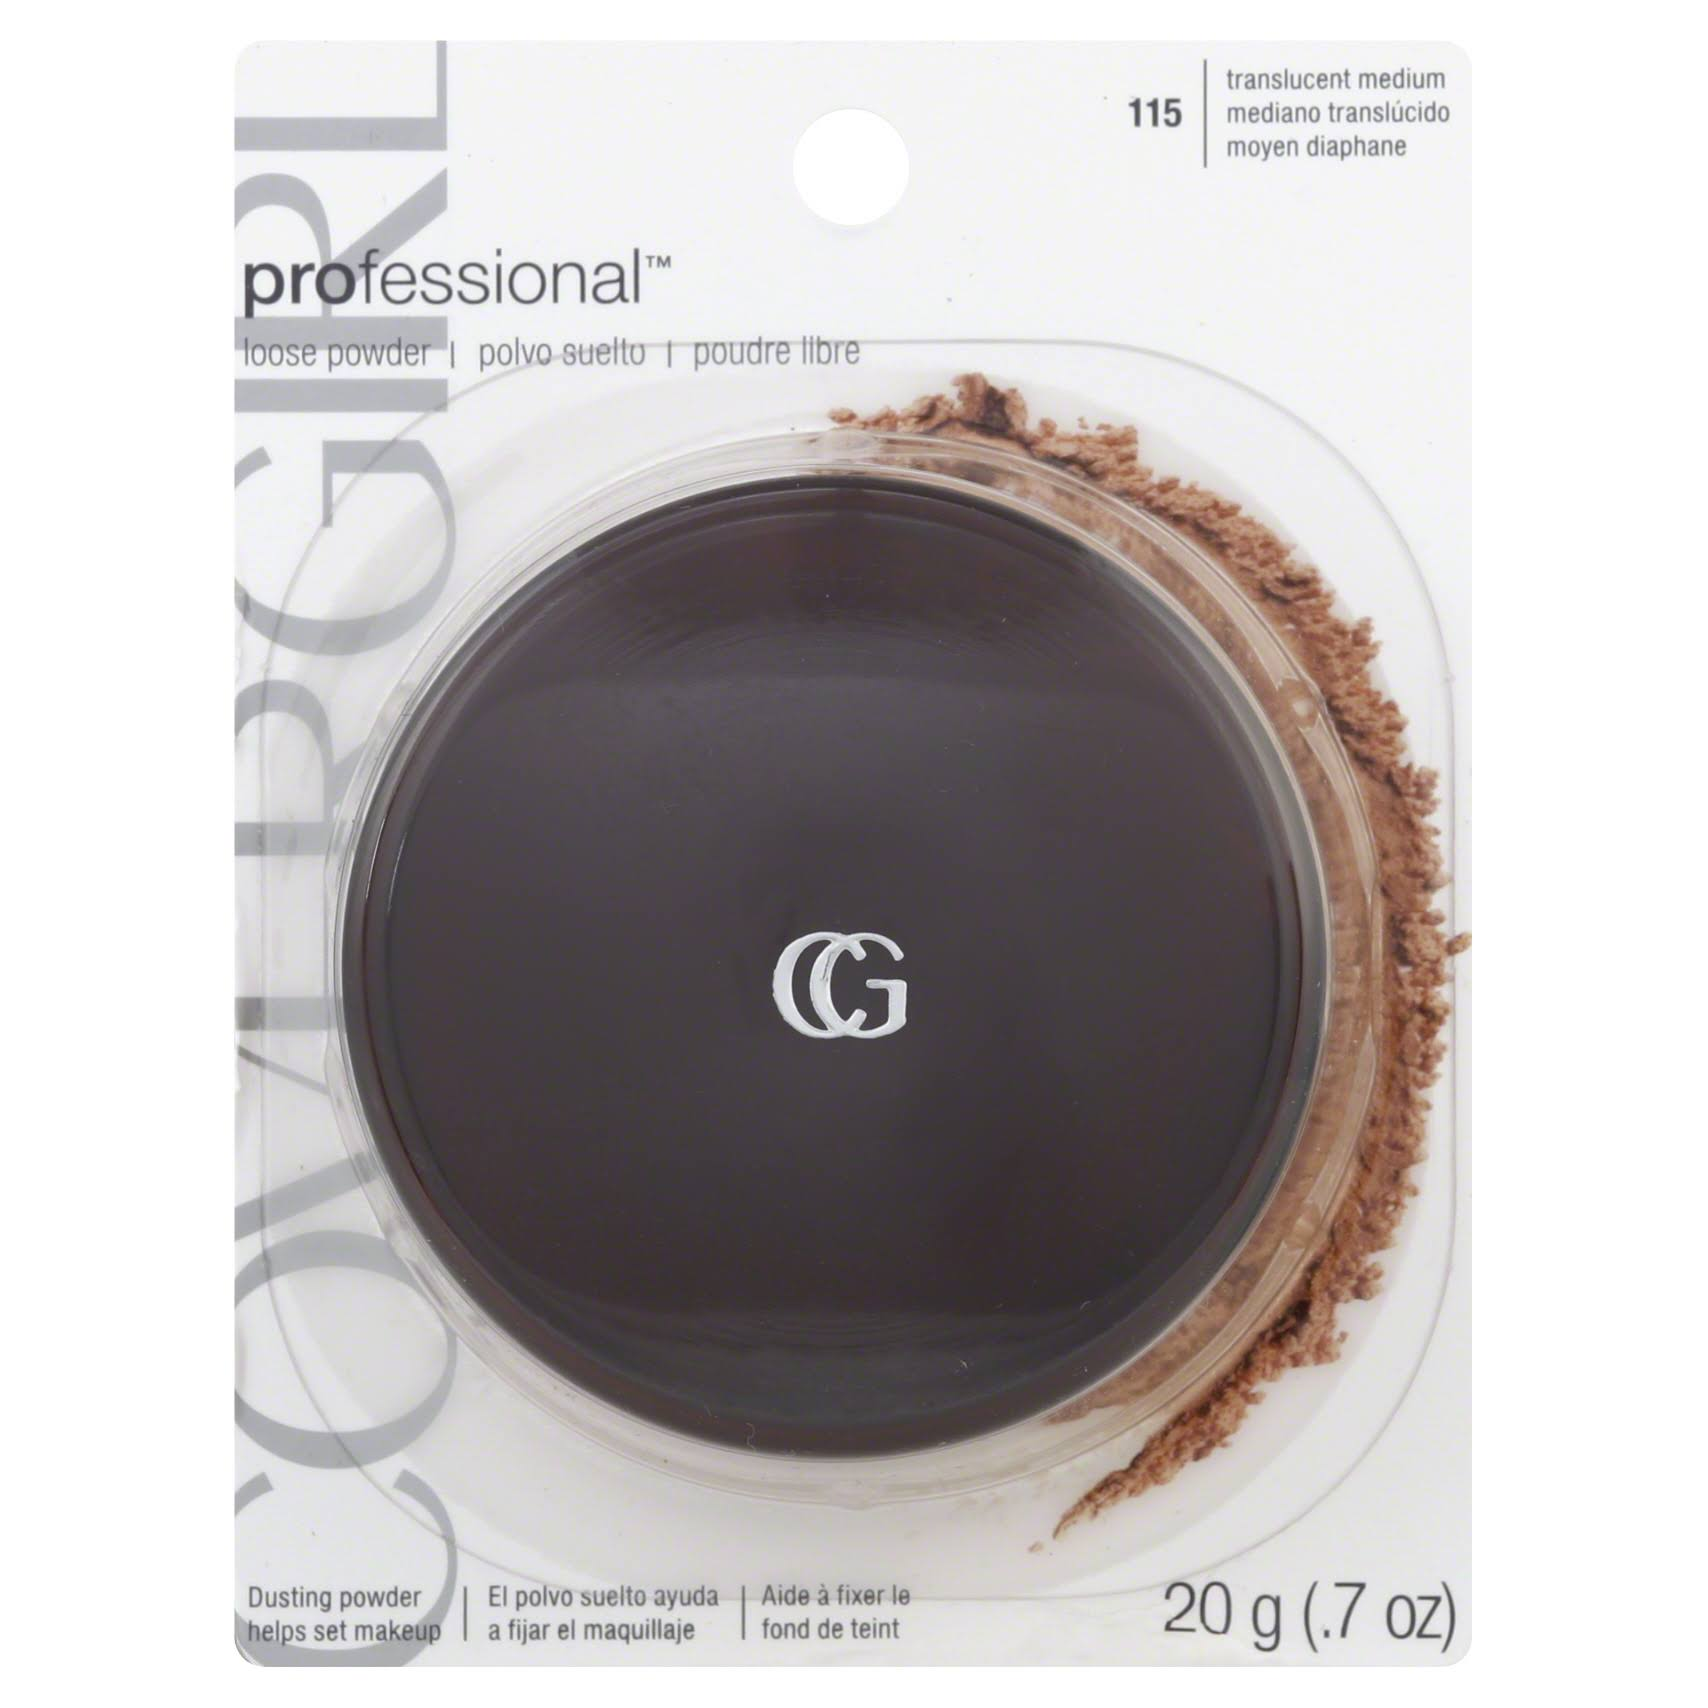 Covergirl Clean Professional Loose Powder - 20g, 115 Translucent Medium